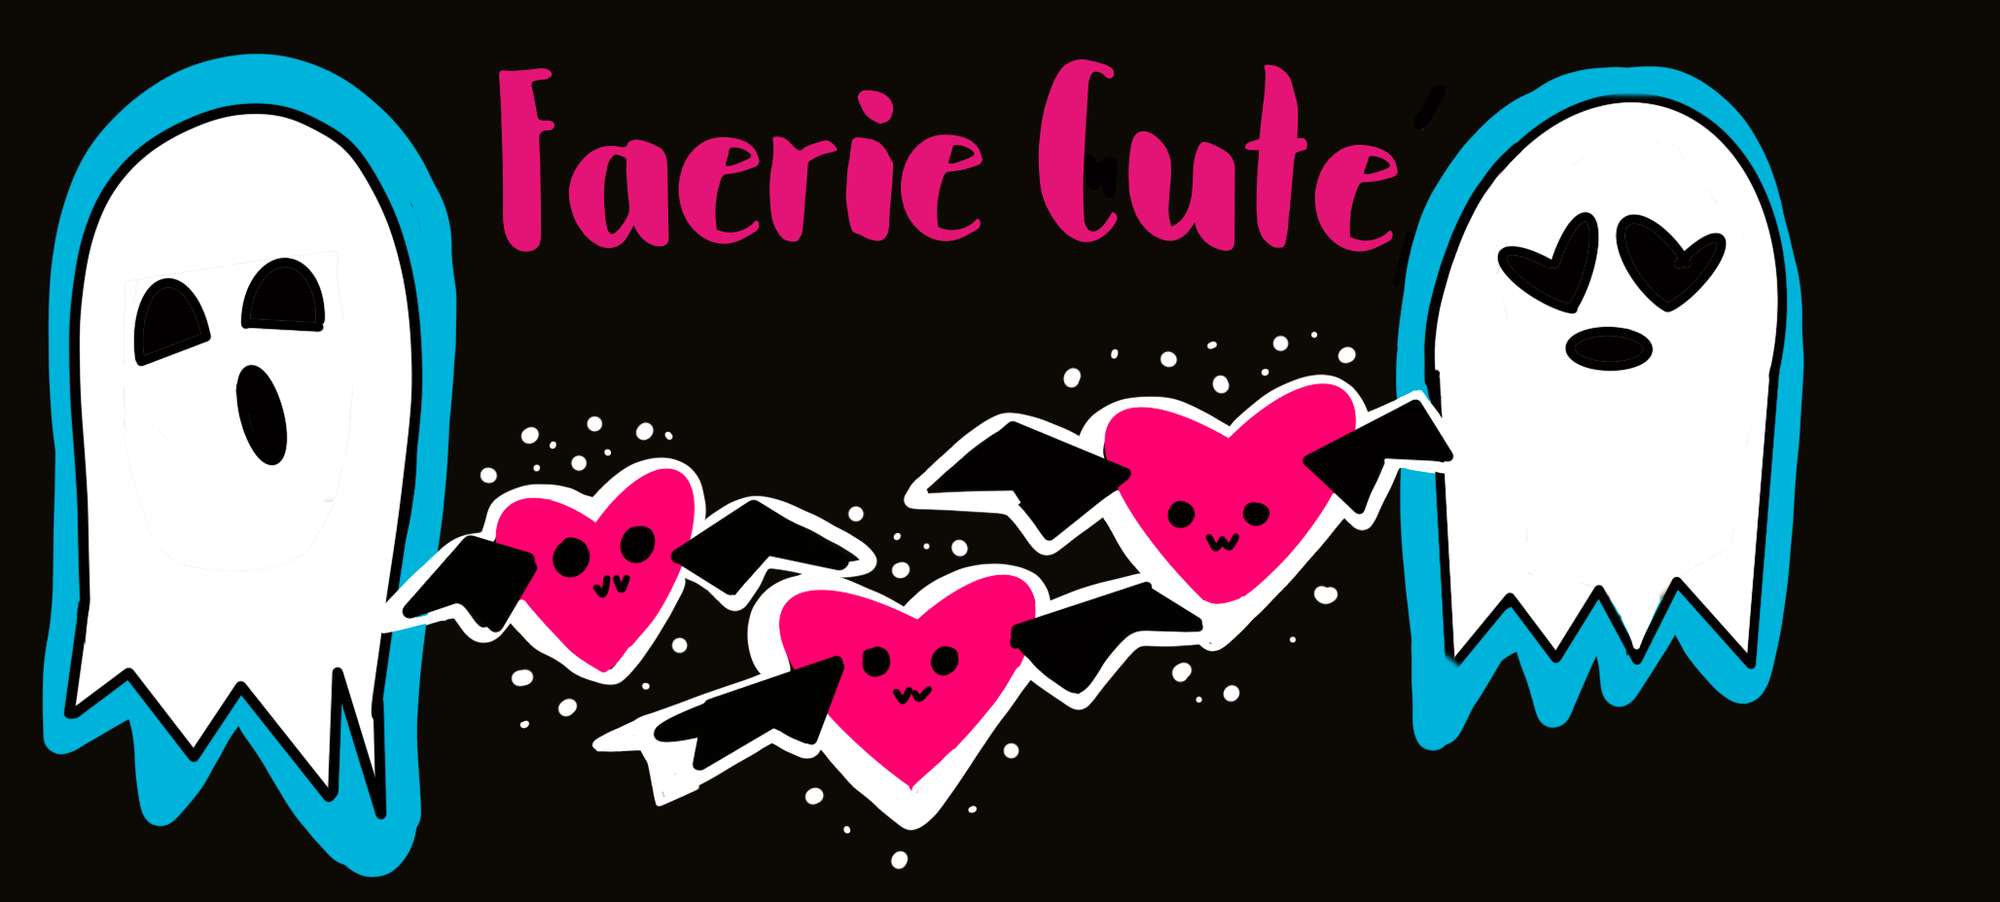 Welcome to Faerie Cute!